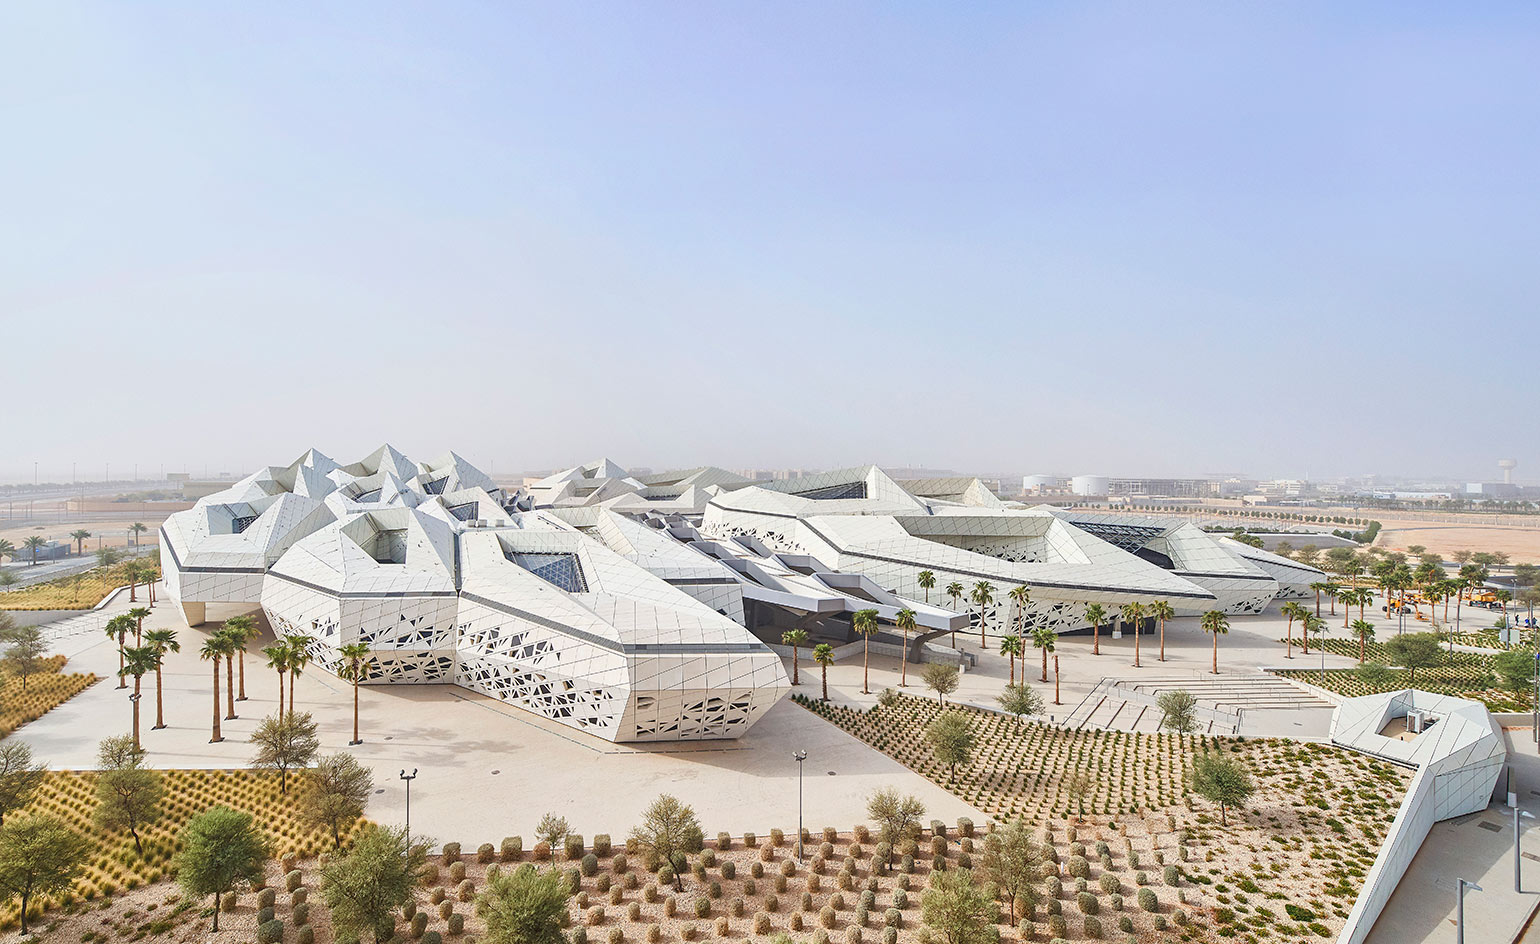 Riyadh's King Abdullah Petroleum Studies and Research Center, designed by Zaha Hadid Architects.